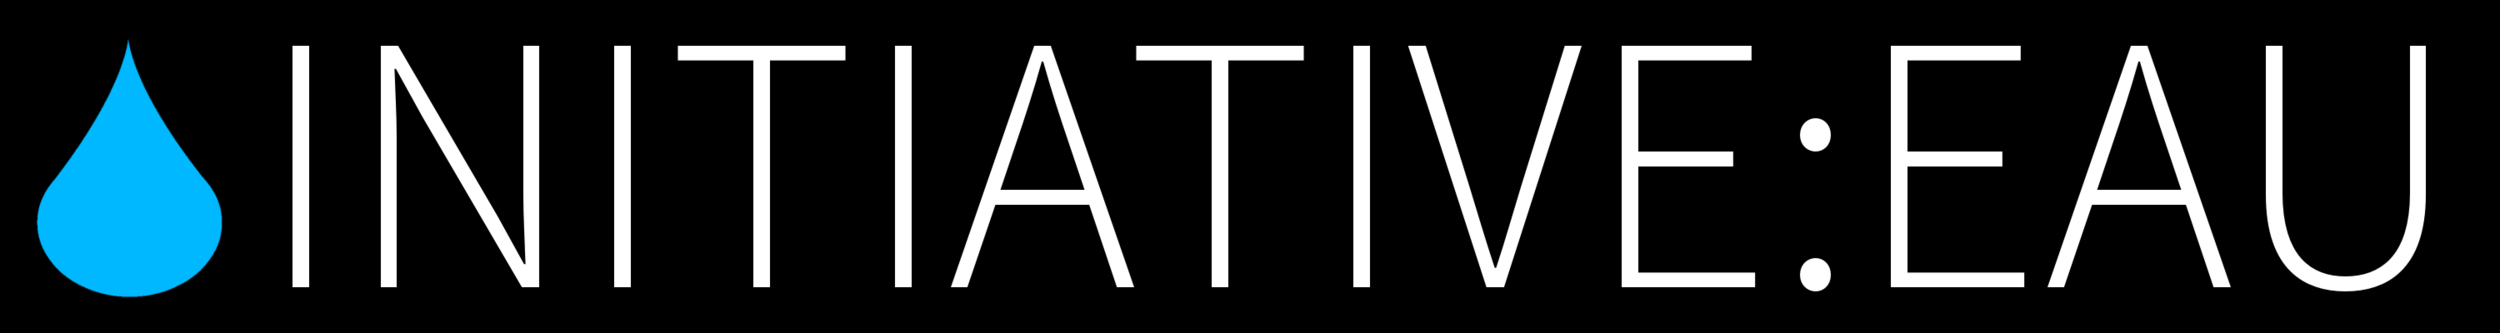 Initiative Eau Banner (White Text).png